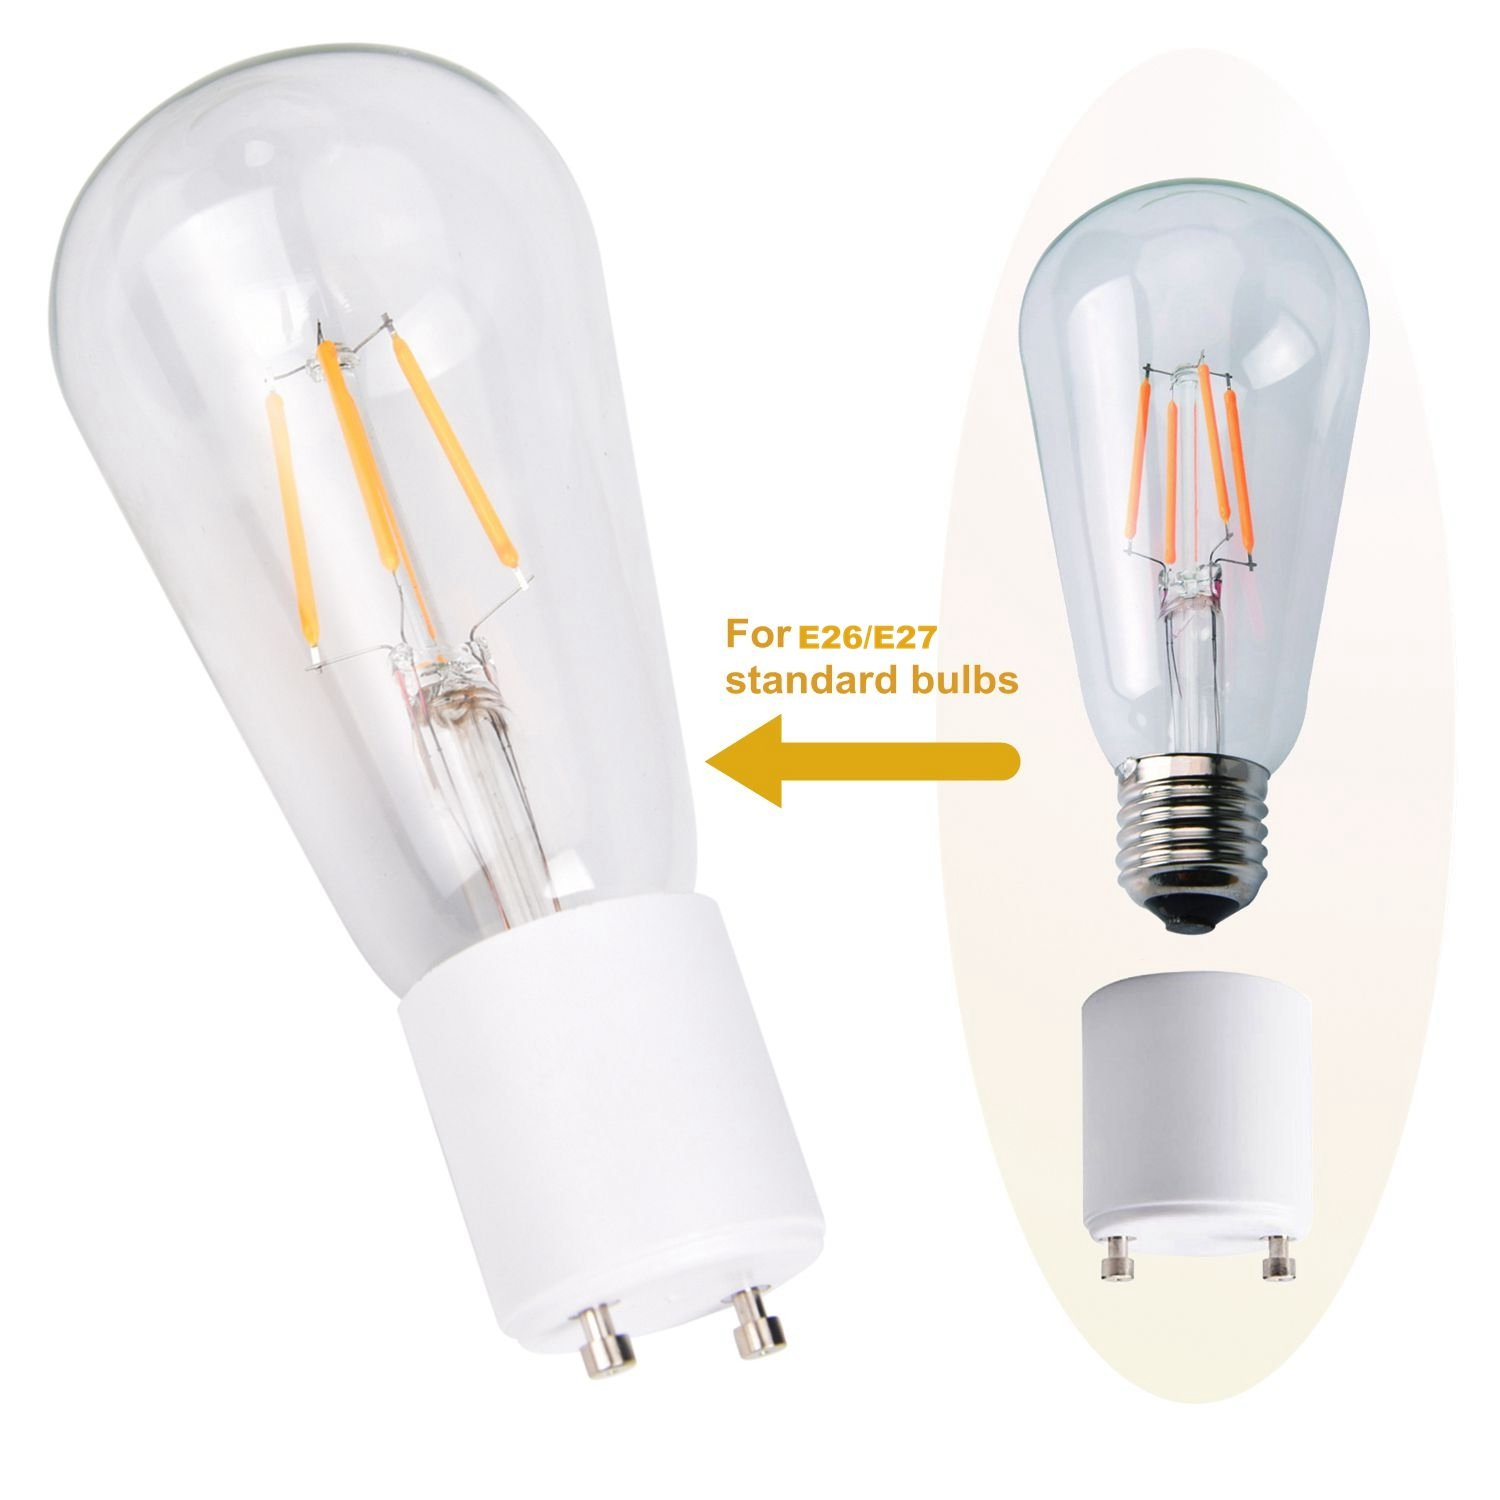 led cfl incandescent solar bulb electronics lights bulbs the is edyeazul review light best updated which